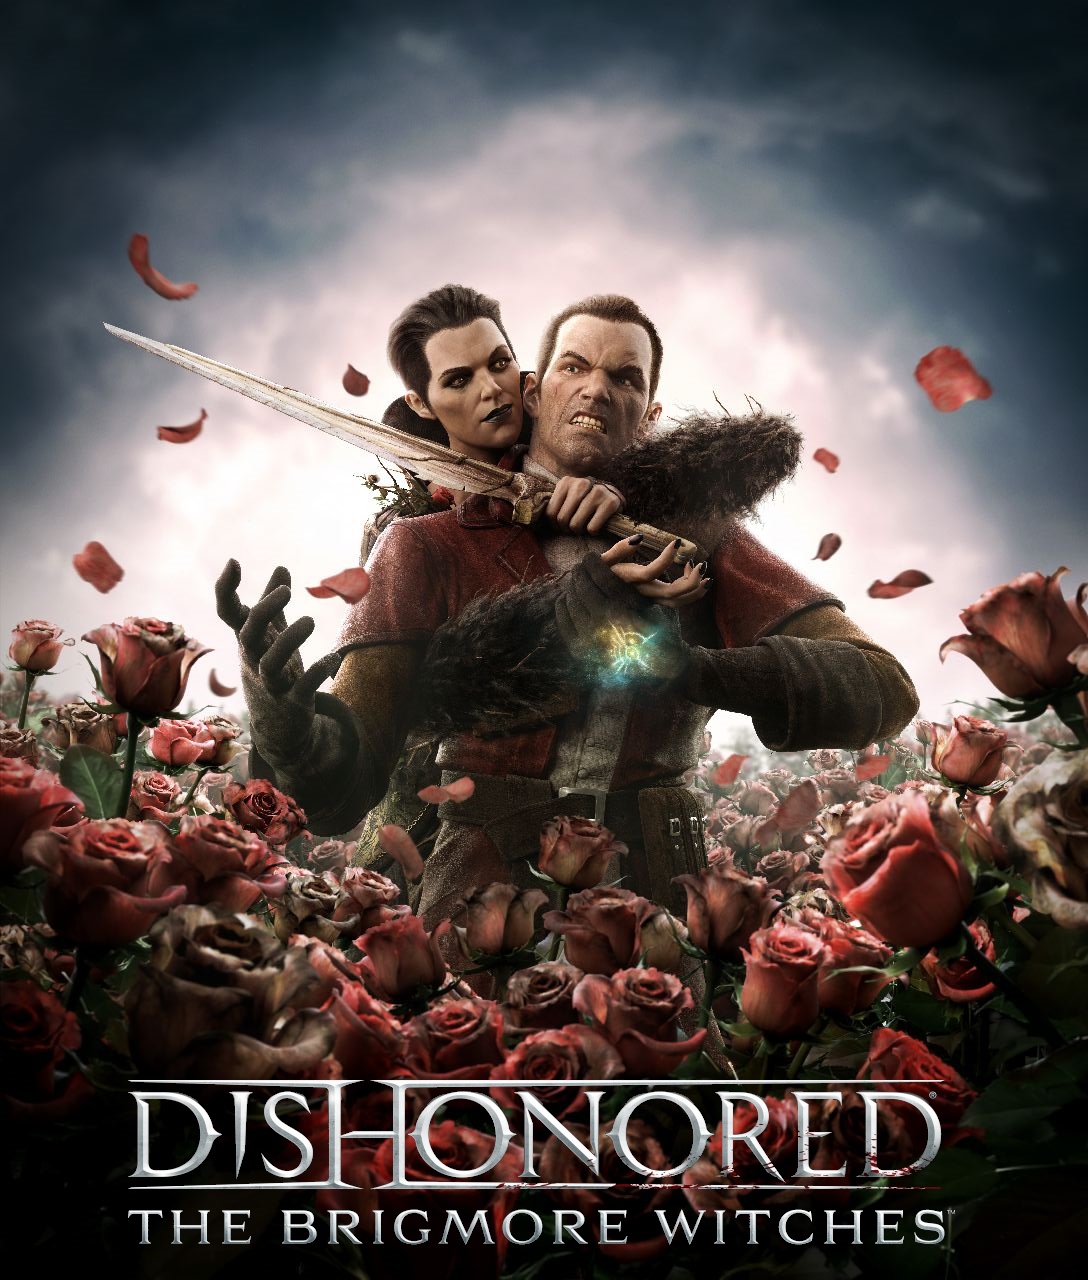 http://images2.wikia.nocookie.net/__cb20130716155459/dishonoredvideogame/images/9/9a/The_Brigmore_Witches_Poster.png